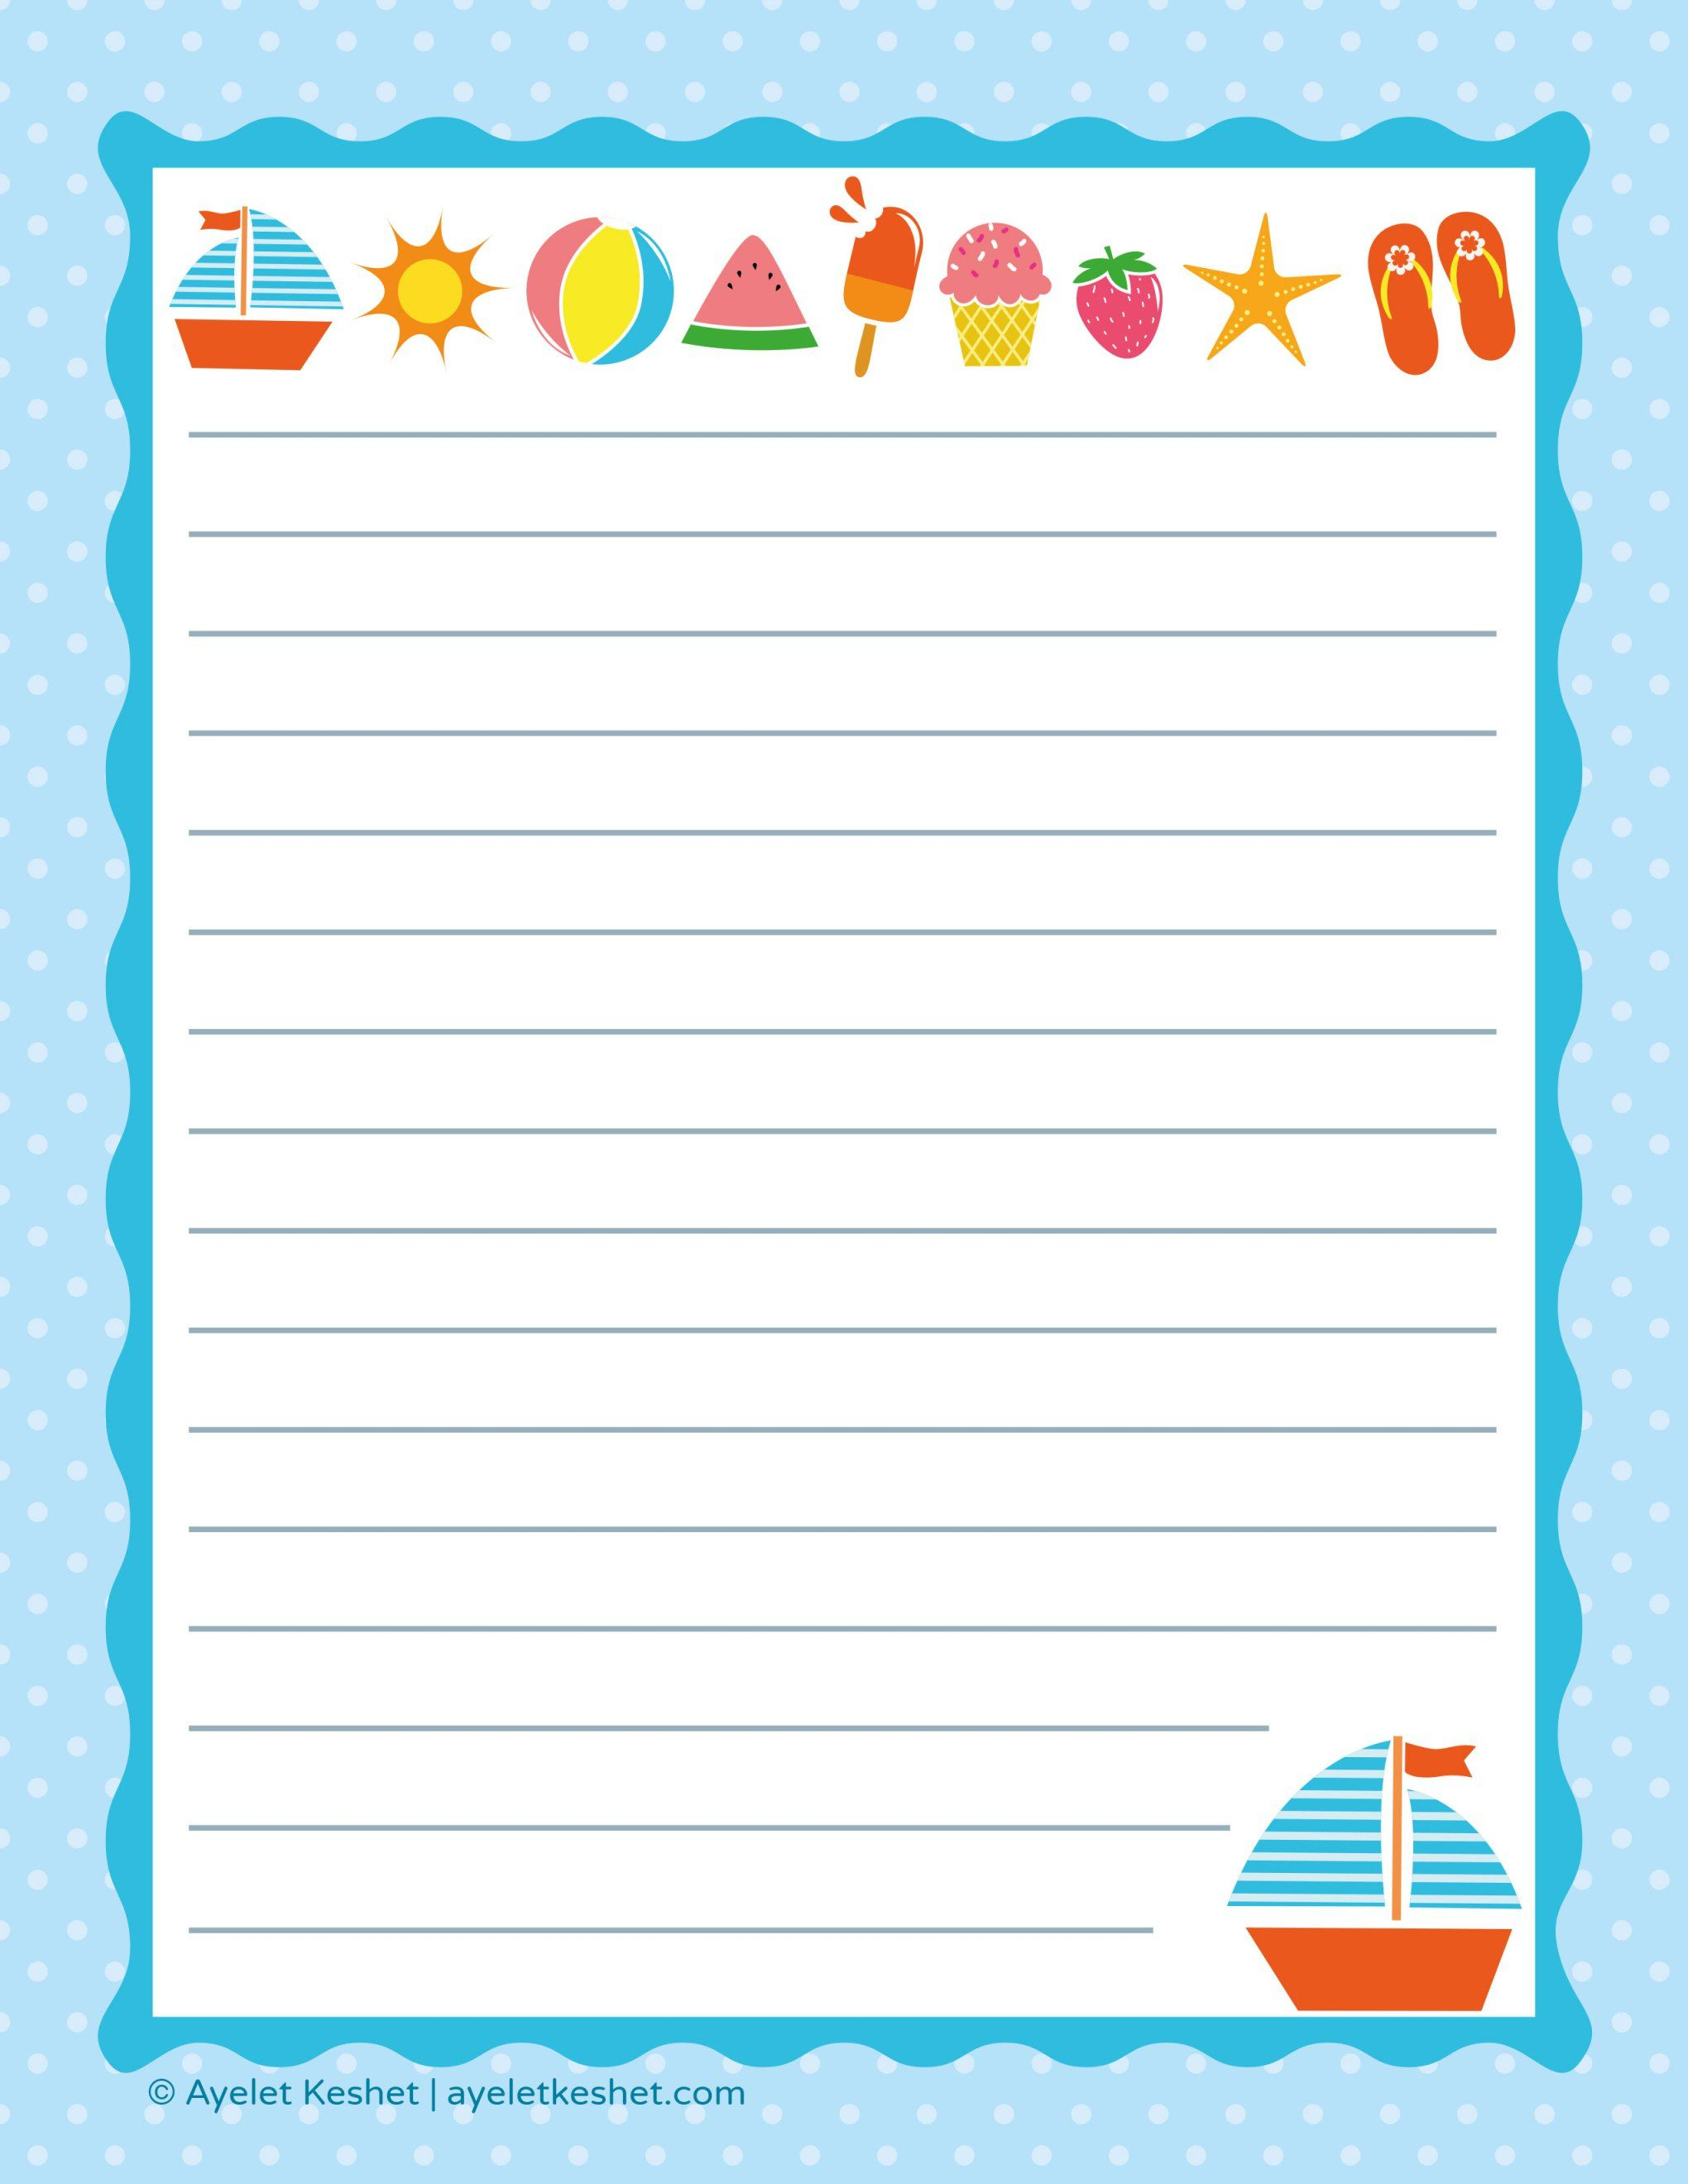 Free Printable Letter Paper | Printables To Go | Pinterest - Free Printable Writing Paper